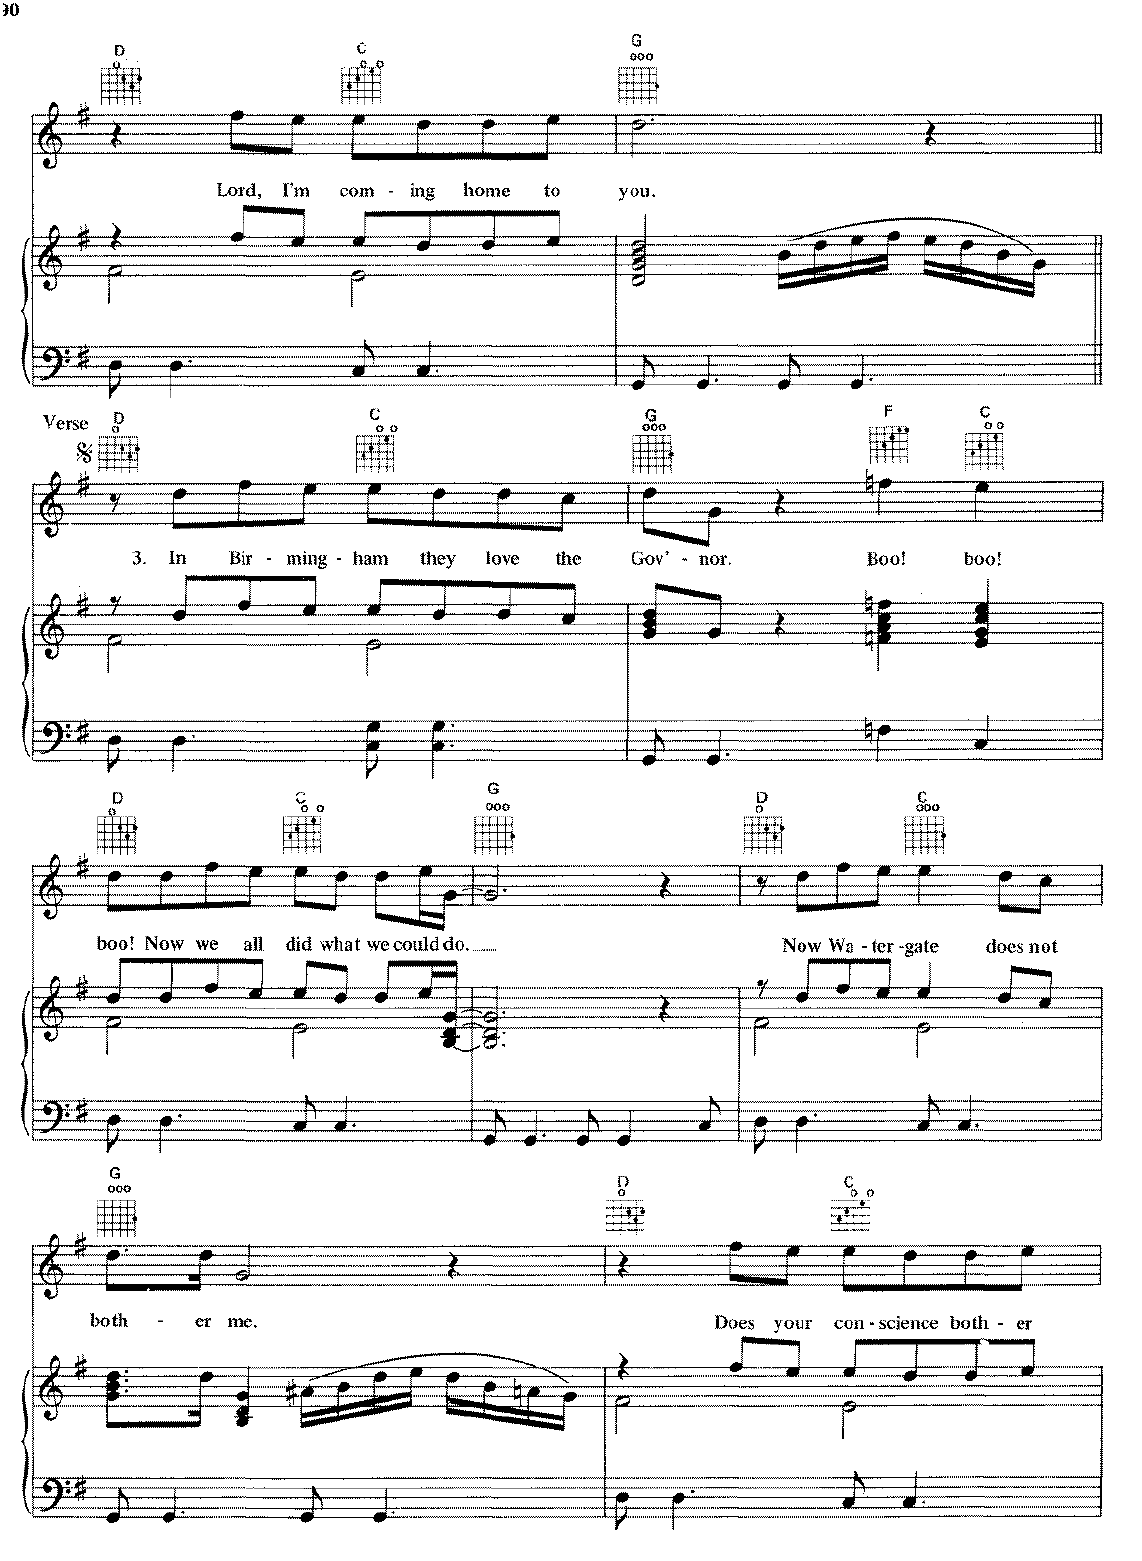 54063374 Lynyrd Skynyrd Sweet Home Alabama Piano Music Sheet Pdf